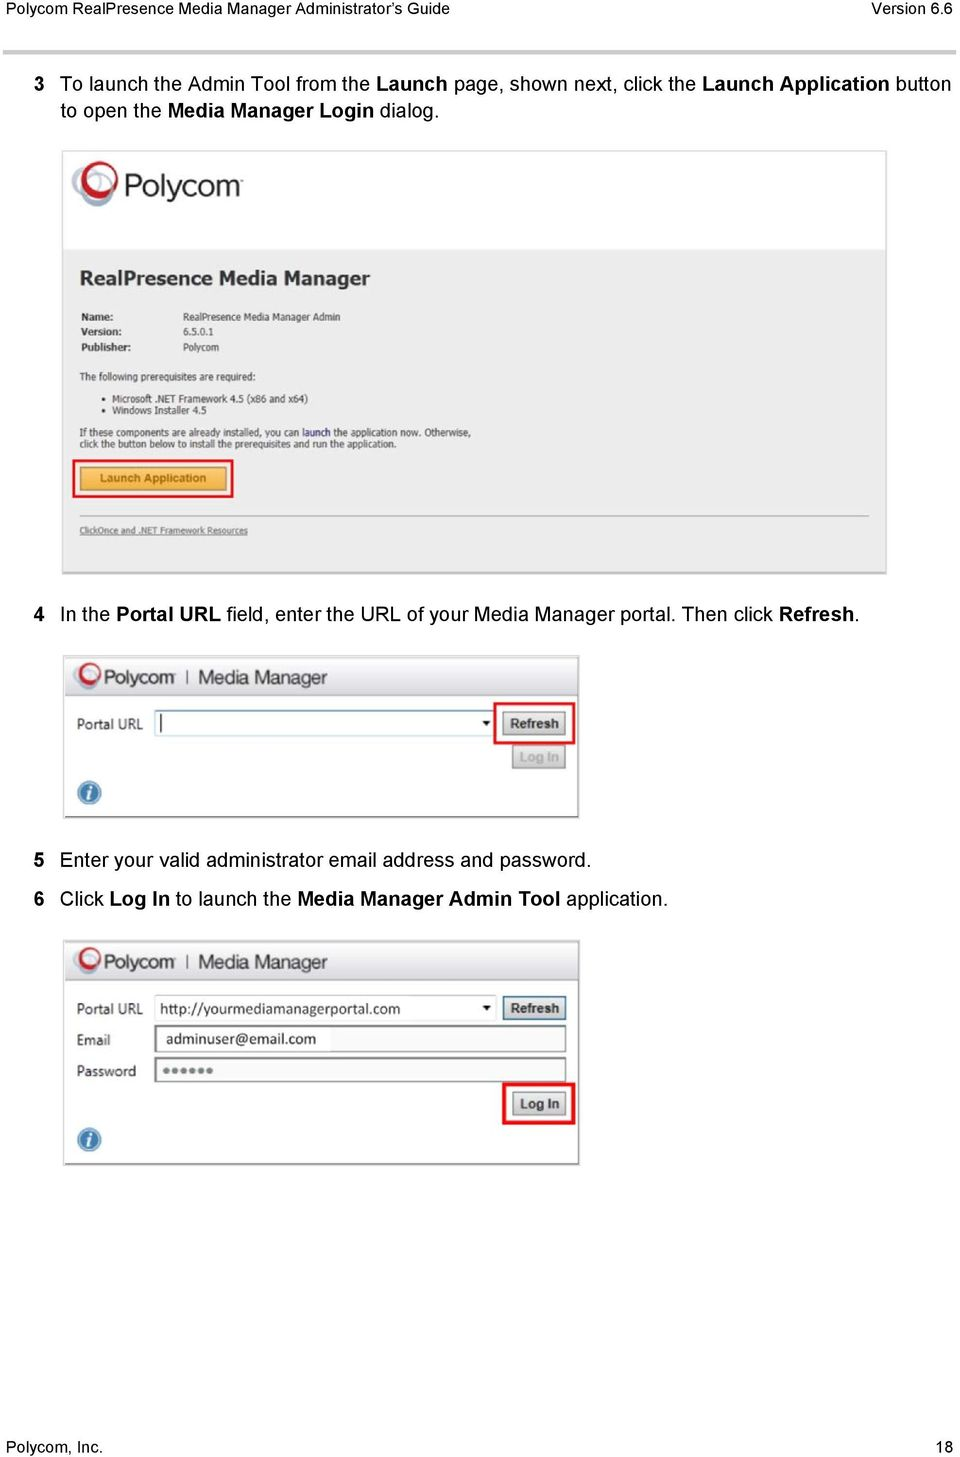 4 In the Portal URL field, enter the URL of your Media Manager portal. Then click Refresh.